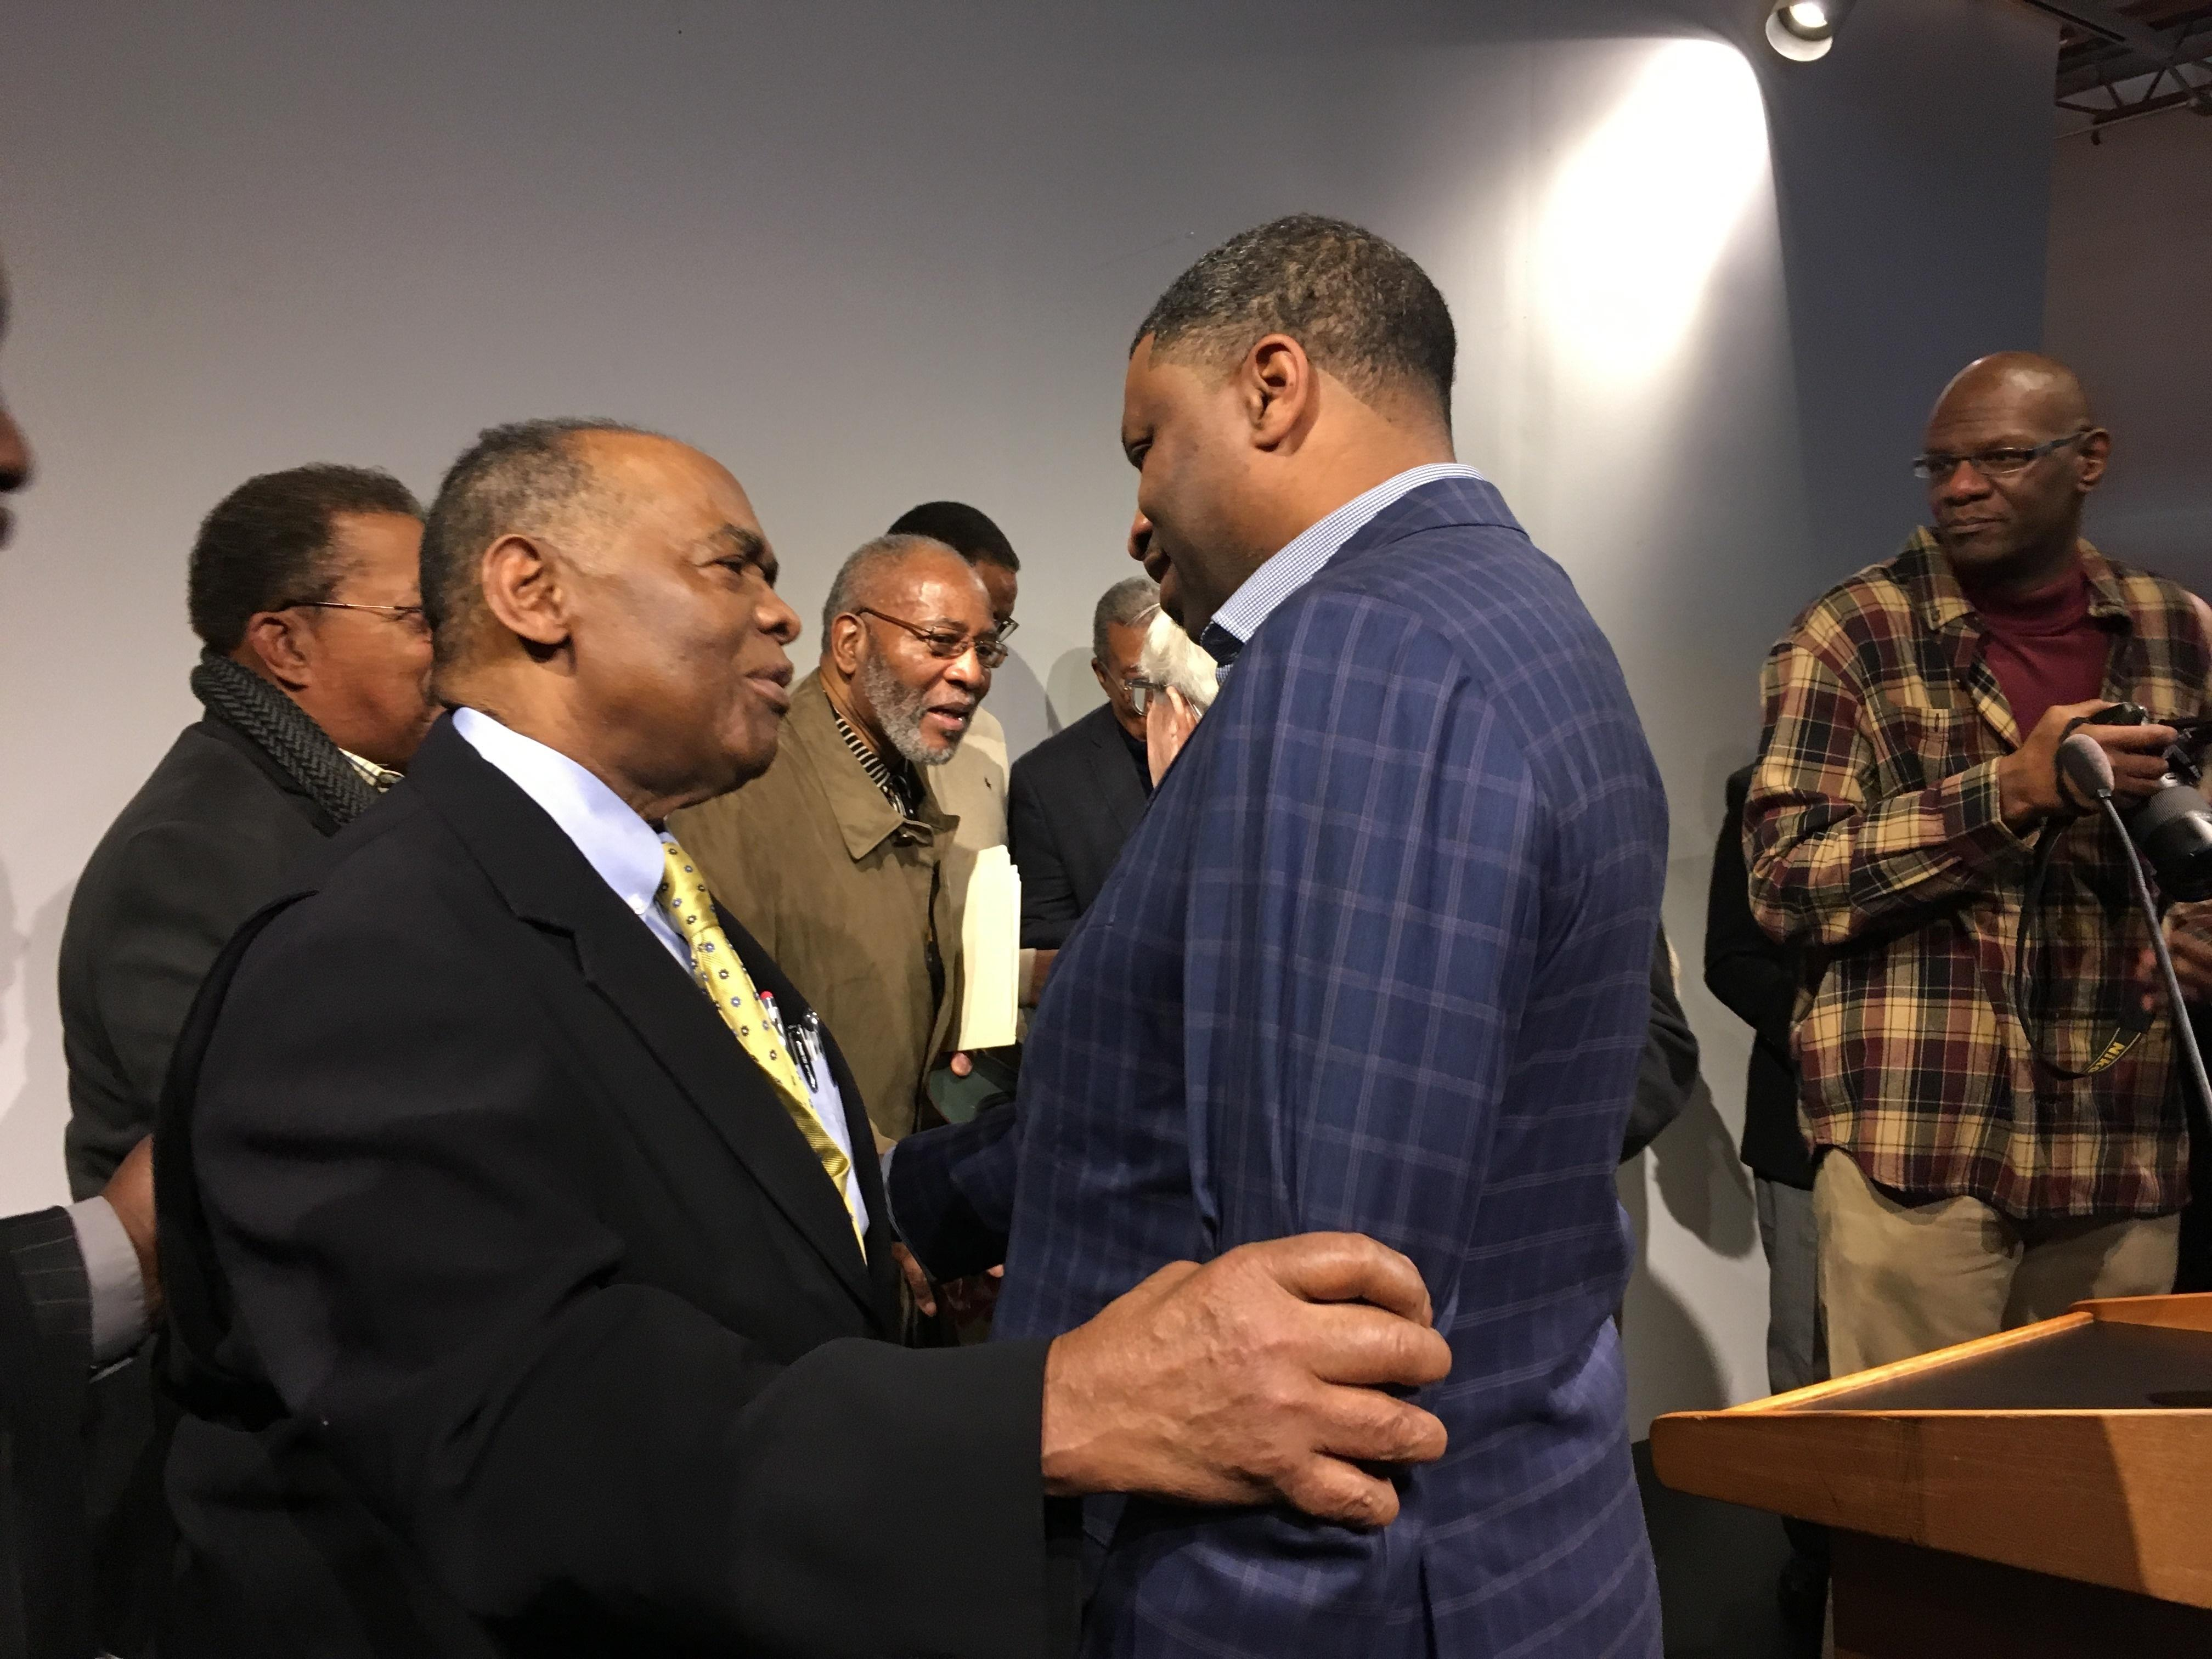 NAACP President Derrick Johnson, right, speaks with Dr. Robert Smith, former president of the Medical Committee for Human Rights, after a speech Saturday, Dec. 9, 2017, denouncing the visit of President Donald Trump in Jackson, Miss., for the opening of twin history and civil rights museums marking Mississippi's bicentennial. (AP Photo/Jeff Amy)